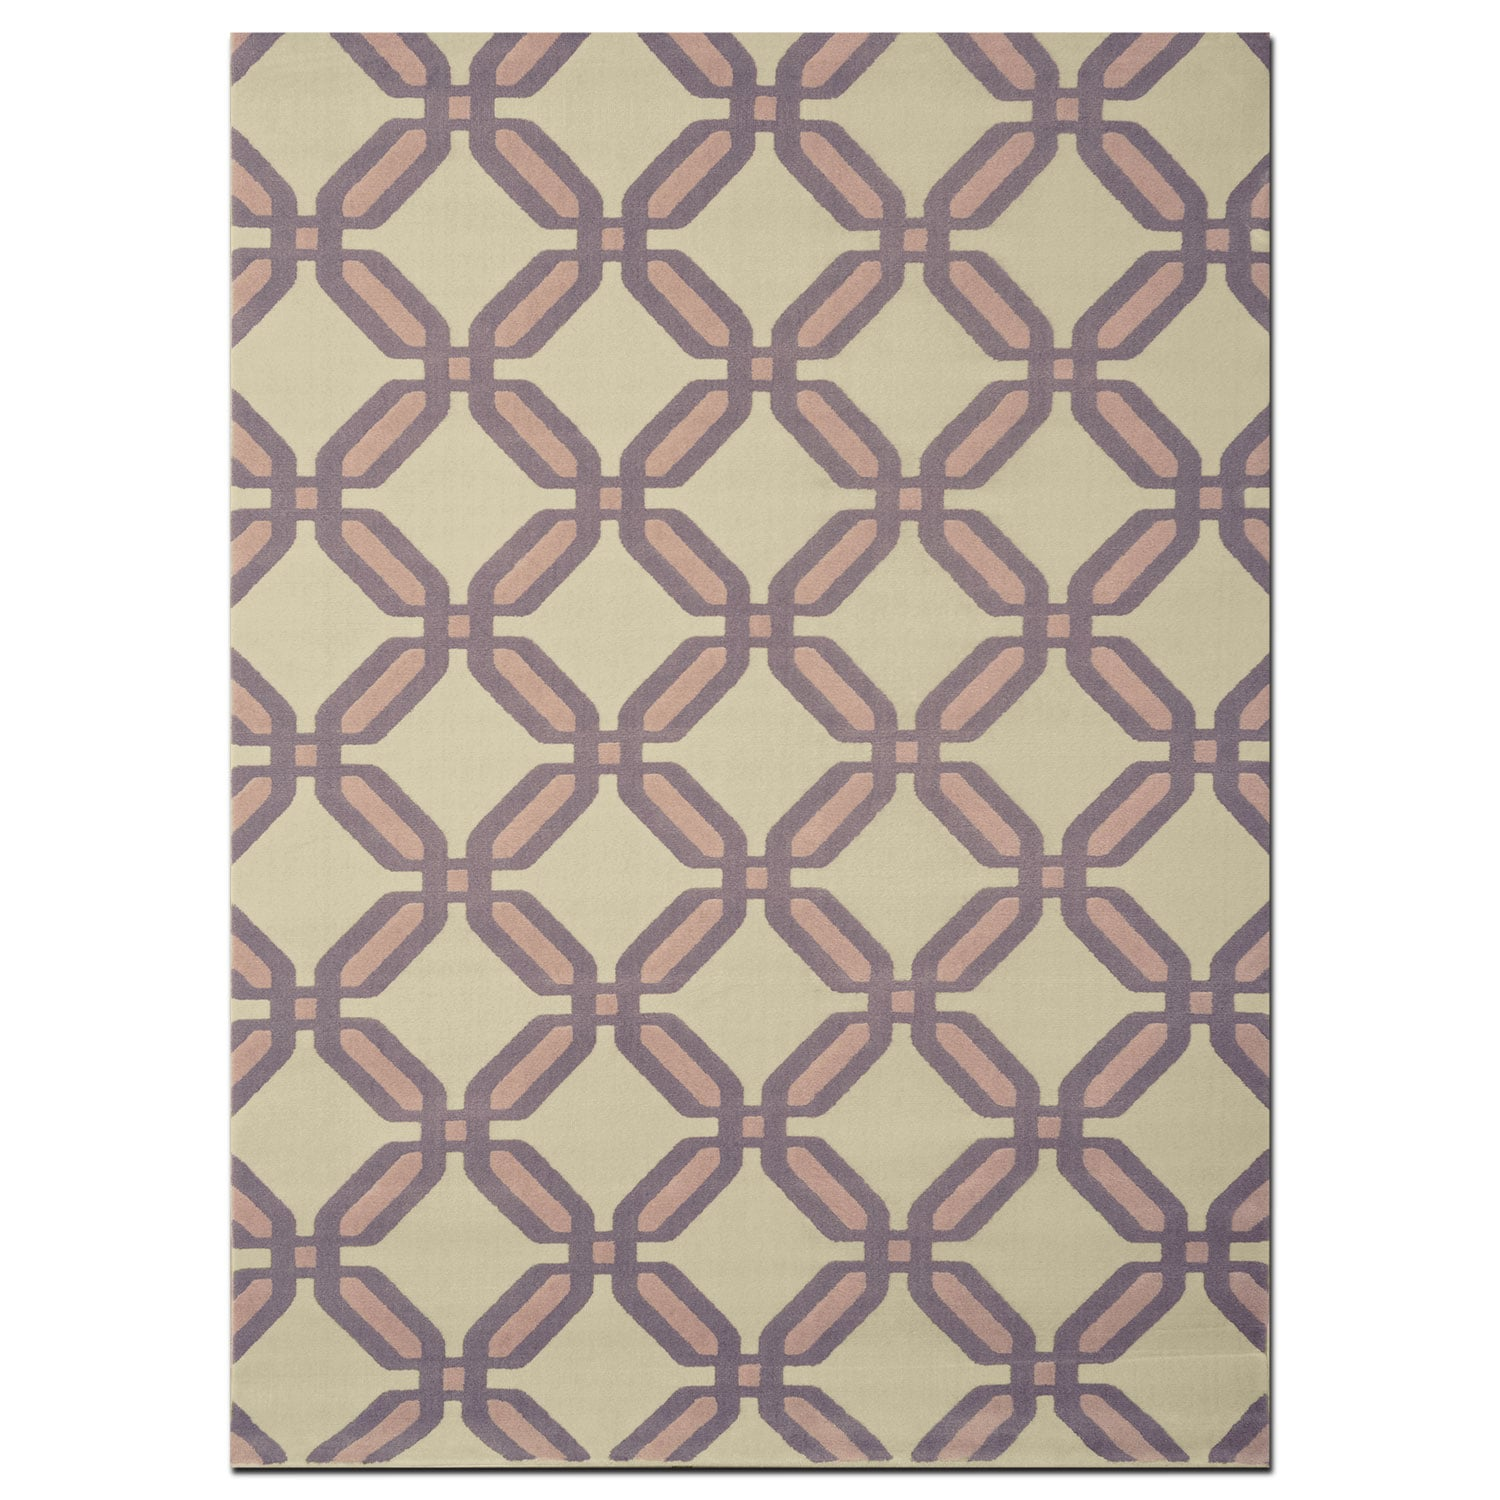 Rugs - Broadway 8' x 10' Area Rug - Gray and Beige